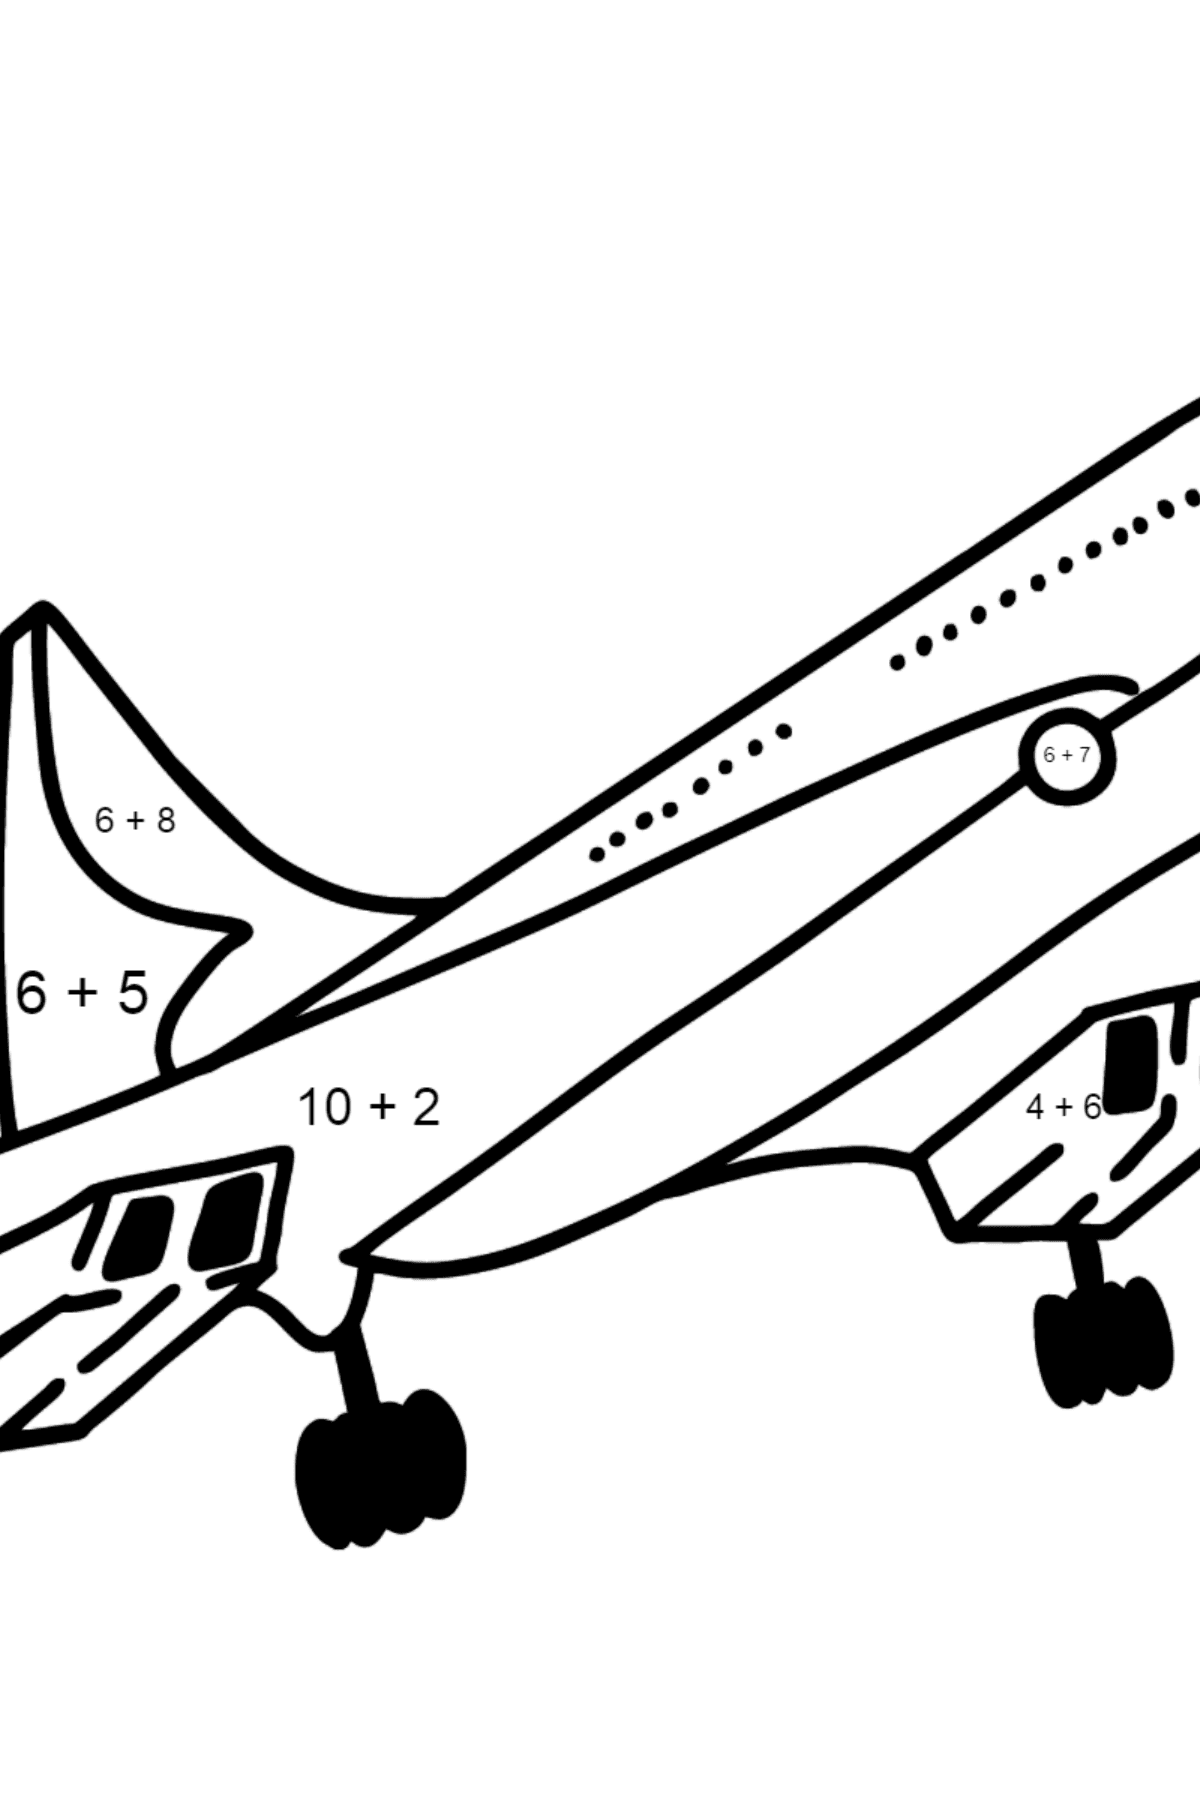 Concorde coloring page - Math Coloring - Addition for Kids